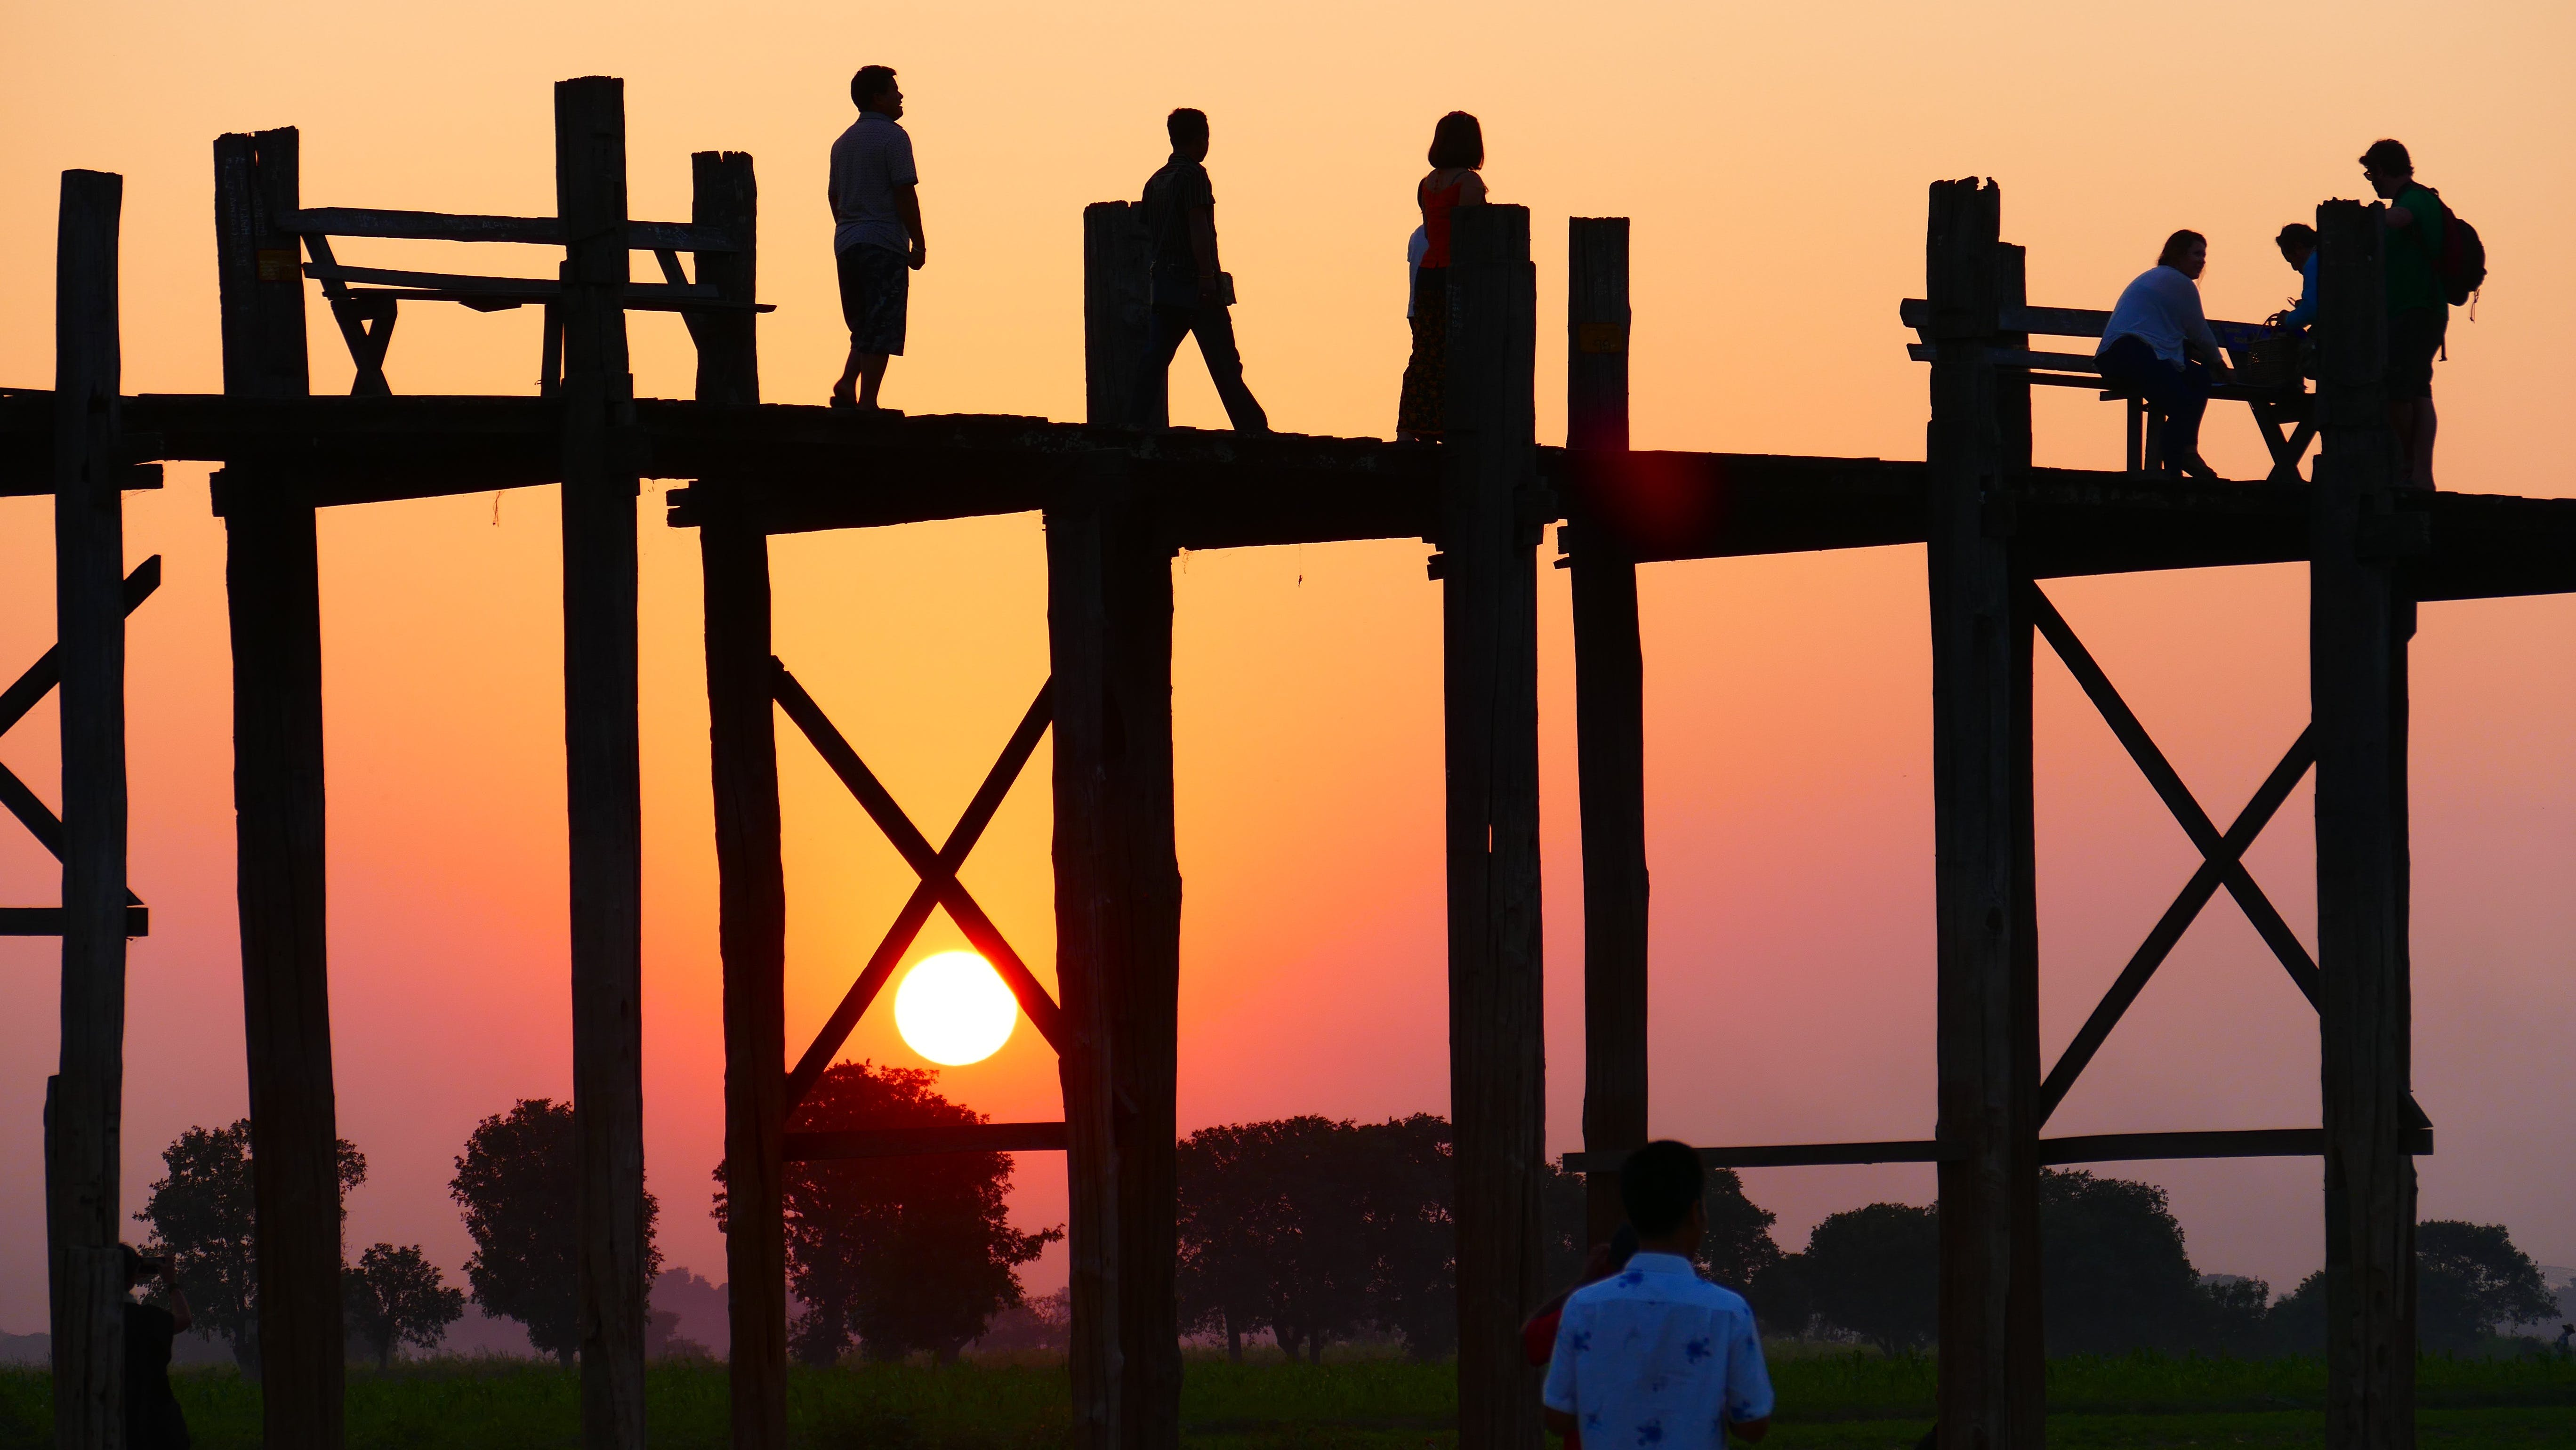 People Standing on a Bridge during Sunset .